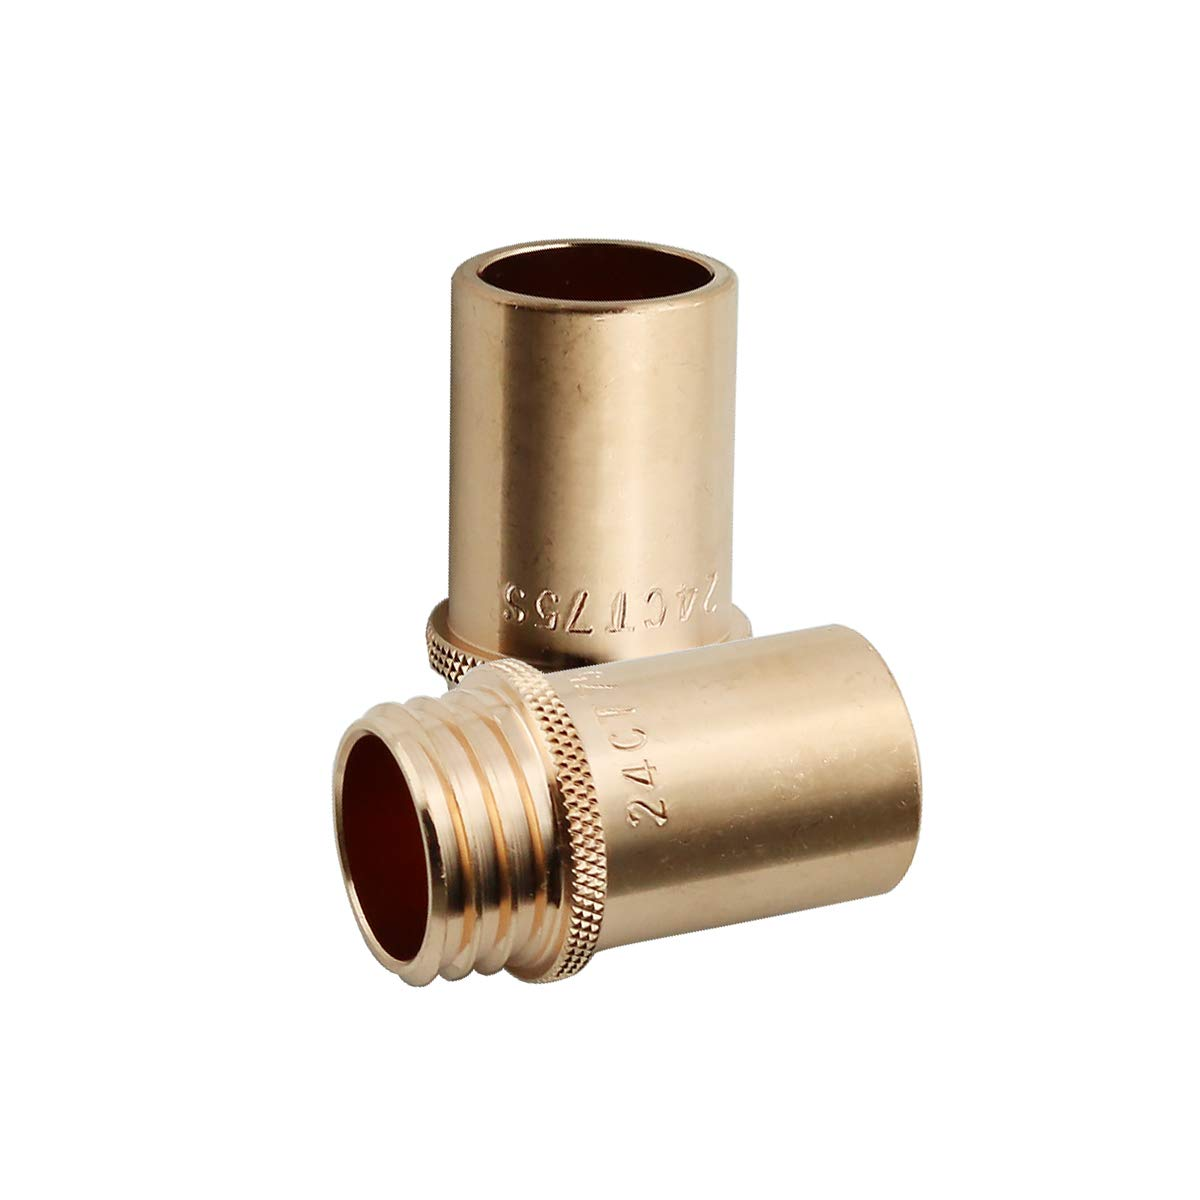 WeldingCity 2 Gas Nozzles 24A-75-SS 24A-75SS 3//4 for Lincoln Magnum and Tweco MIG Welding Guns